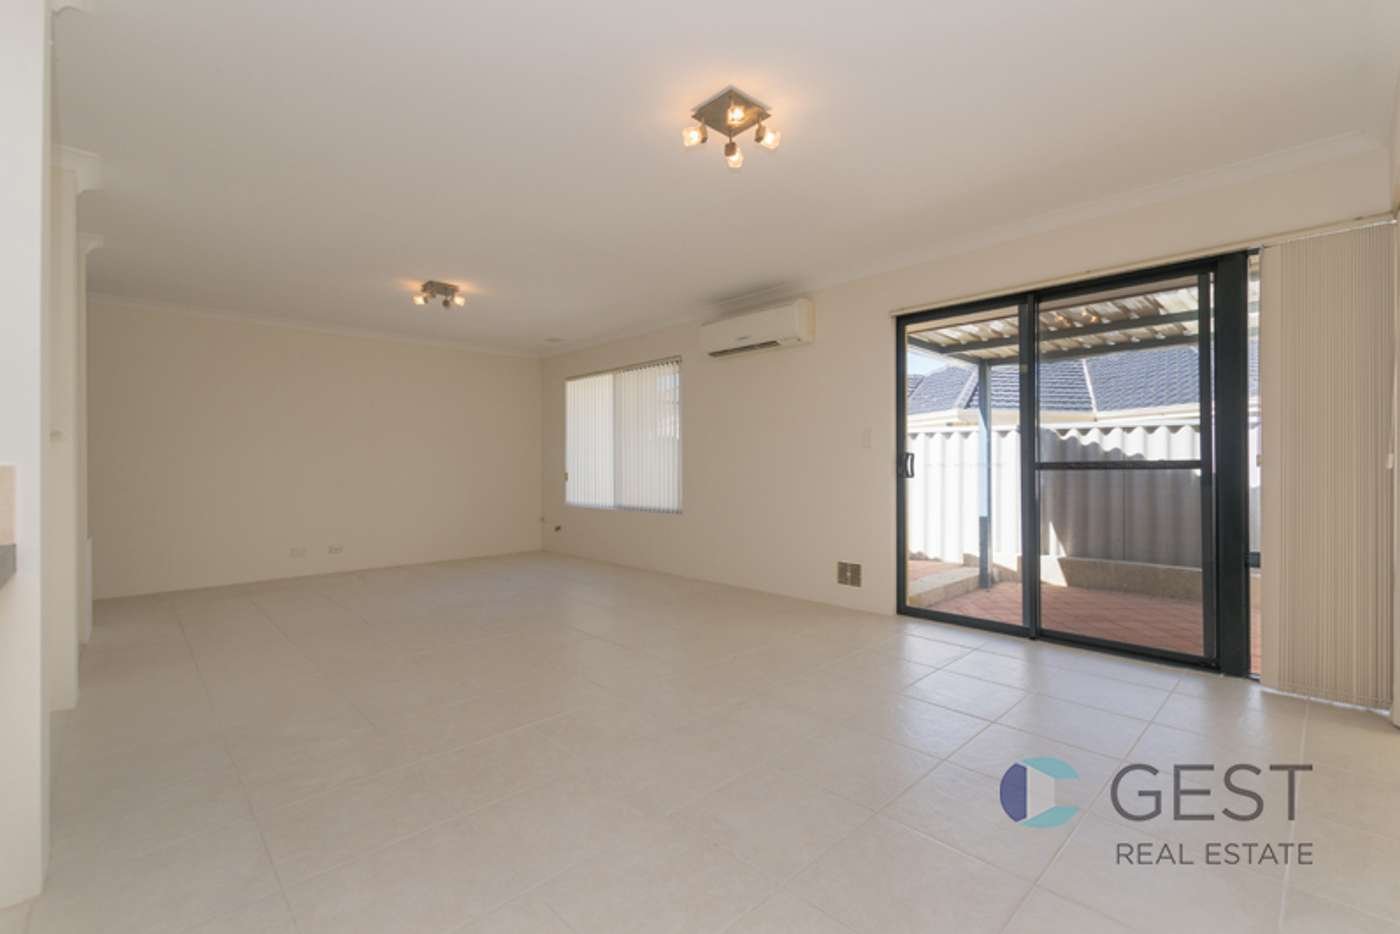 Sixth view of Homely house listing, 47 ELYARD CRESCENT, Stirling WA 6021